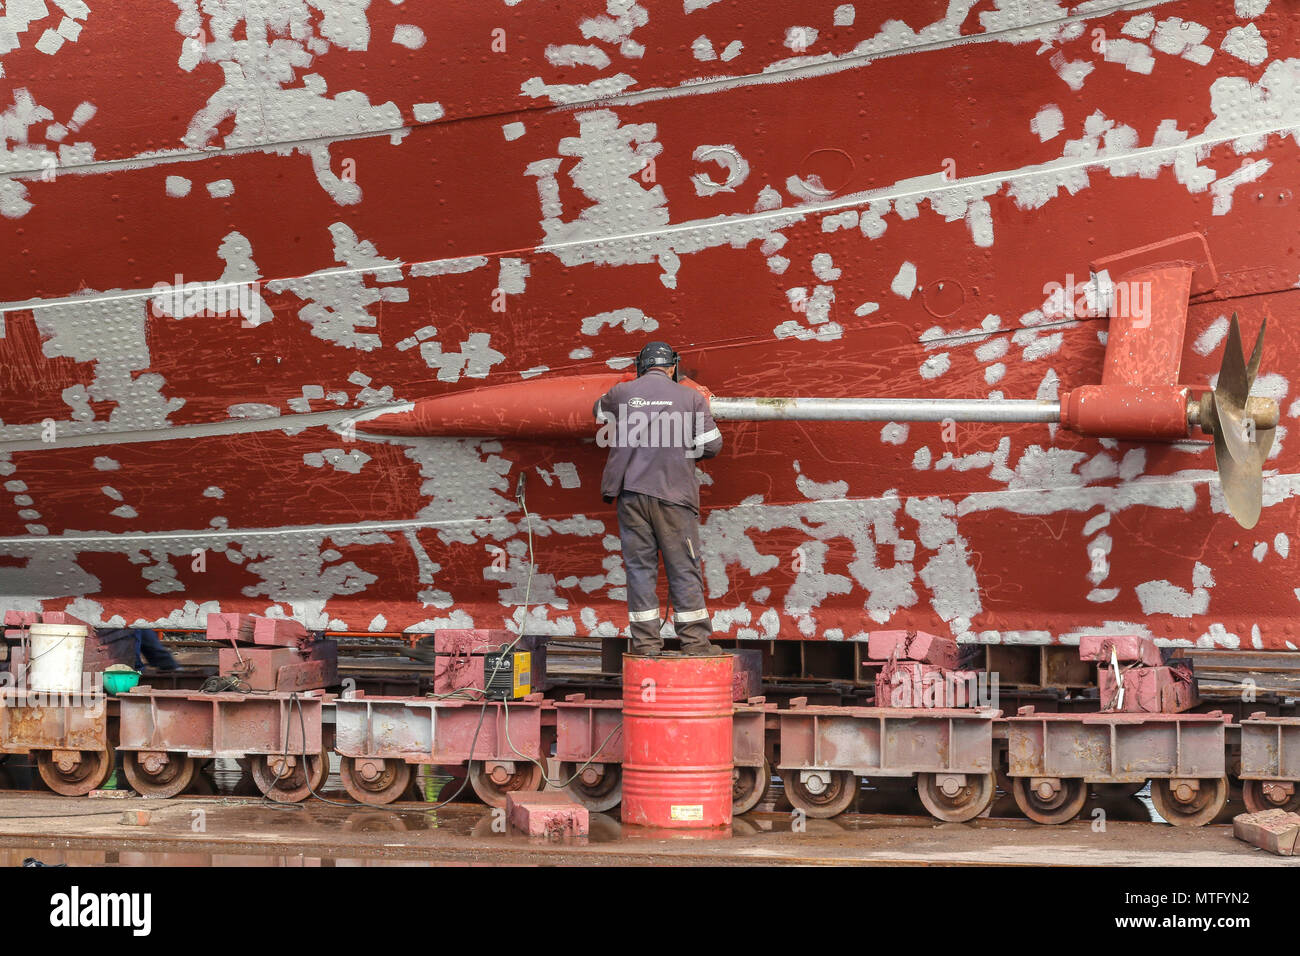 Welder working on a red boat in need to paint, dry dock, Harbour district, cape town, South Africa - Stock Image